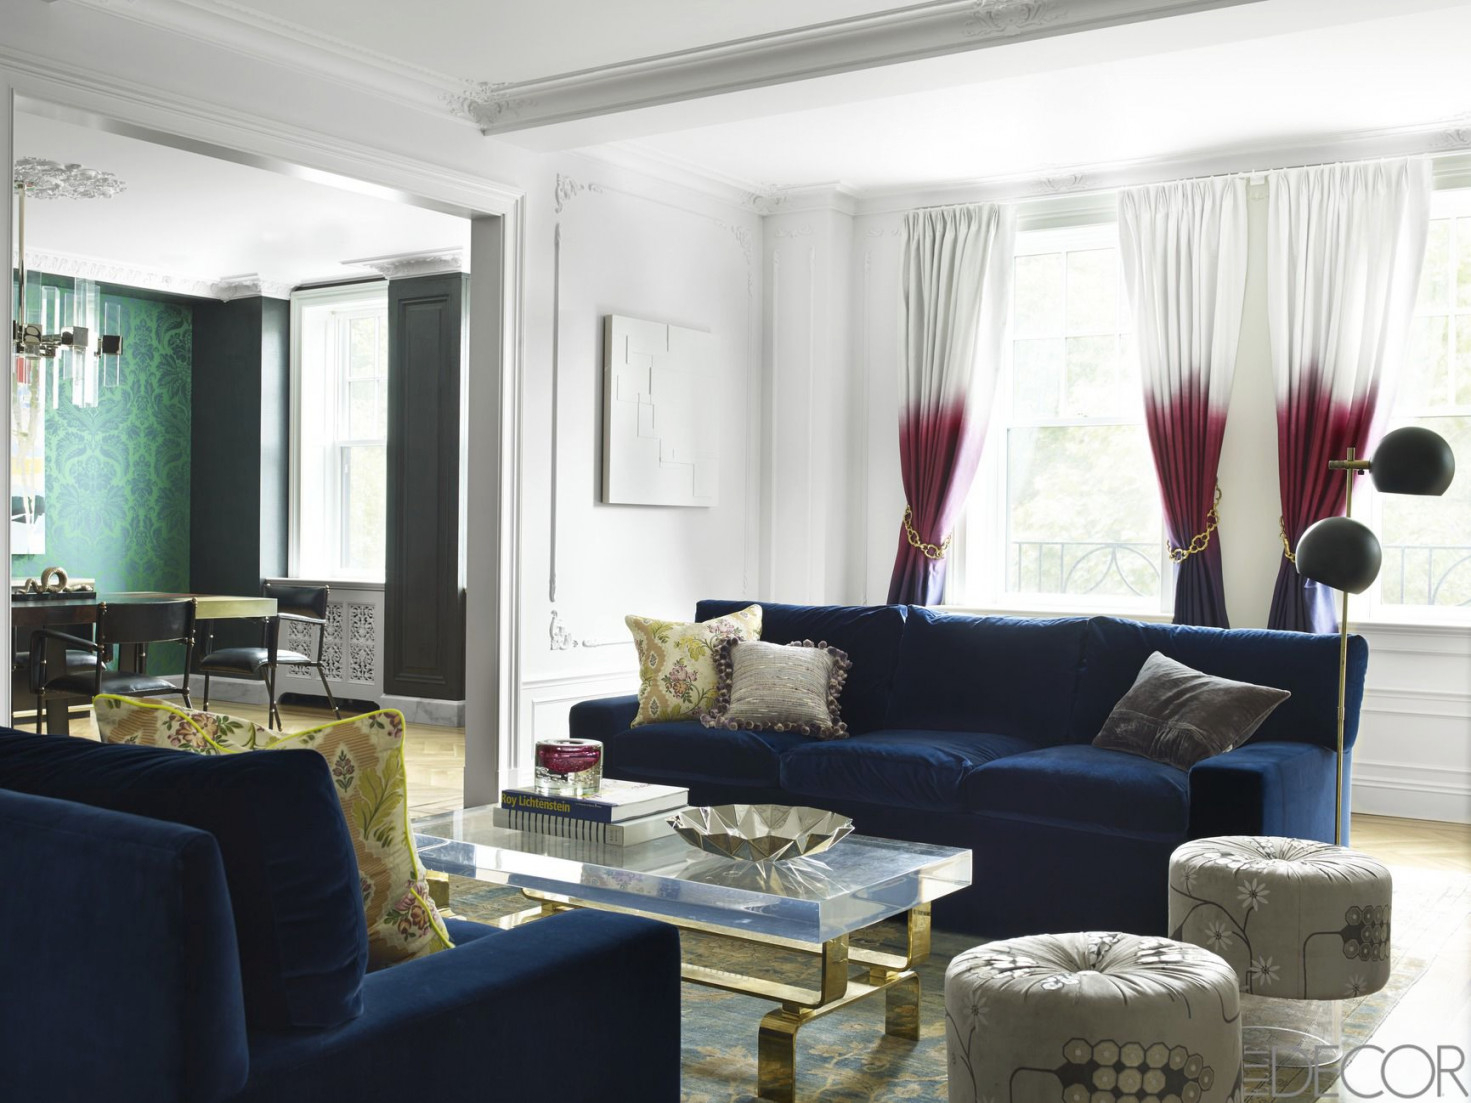 55 Best Living Room Curtain Ideas – Elegant Window Treatments throughout Curtain Styles For Living Rooms